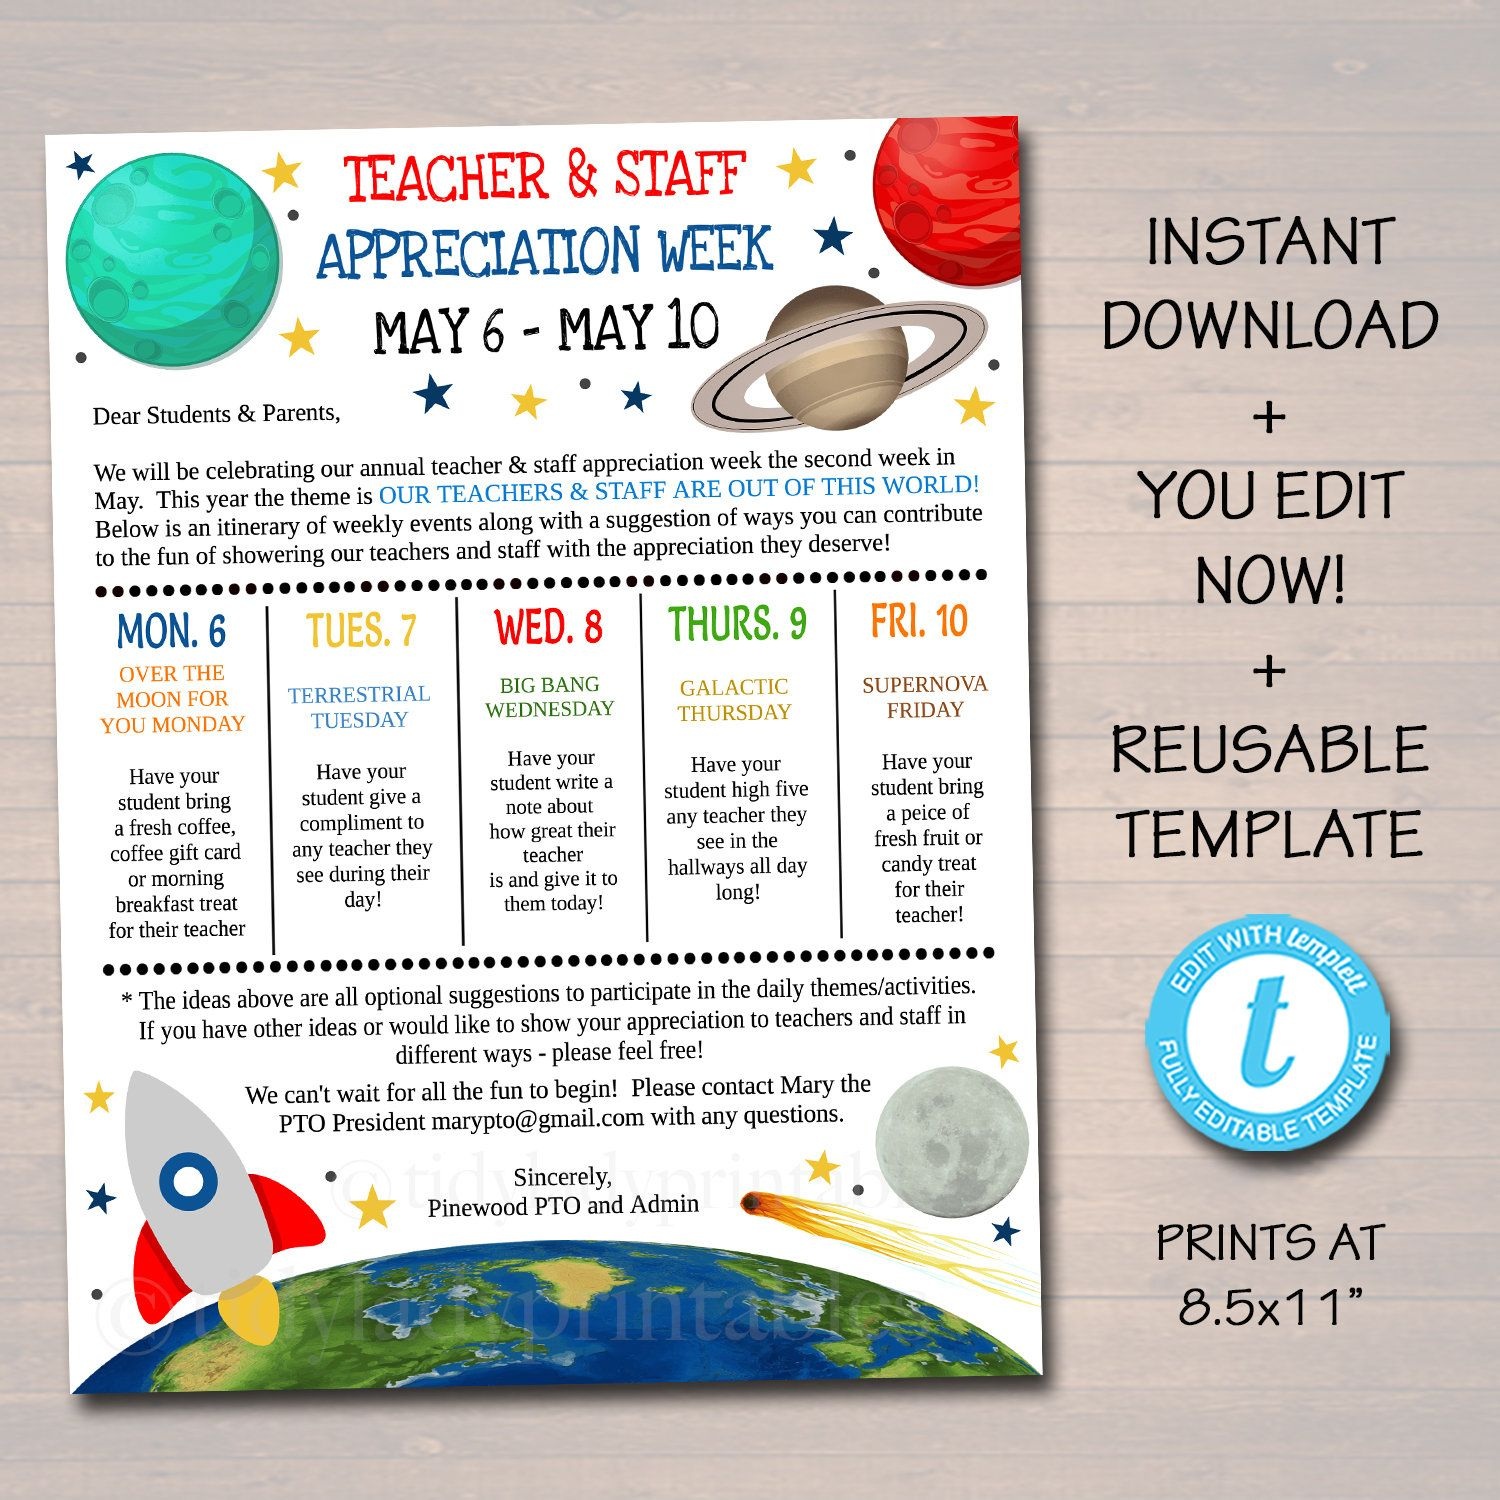 Editable Space Theme Teacher Appreciation Staff Invitation Newsletter Printable Appreciation Week Events Take Home Flyer Instant Download In 2021 Teacher Appreciation Themes Teacher Appreciation Week Themes Space Teacher Appreciation